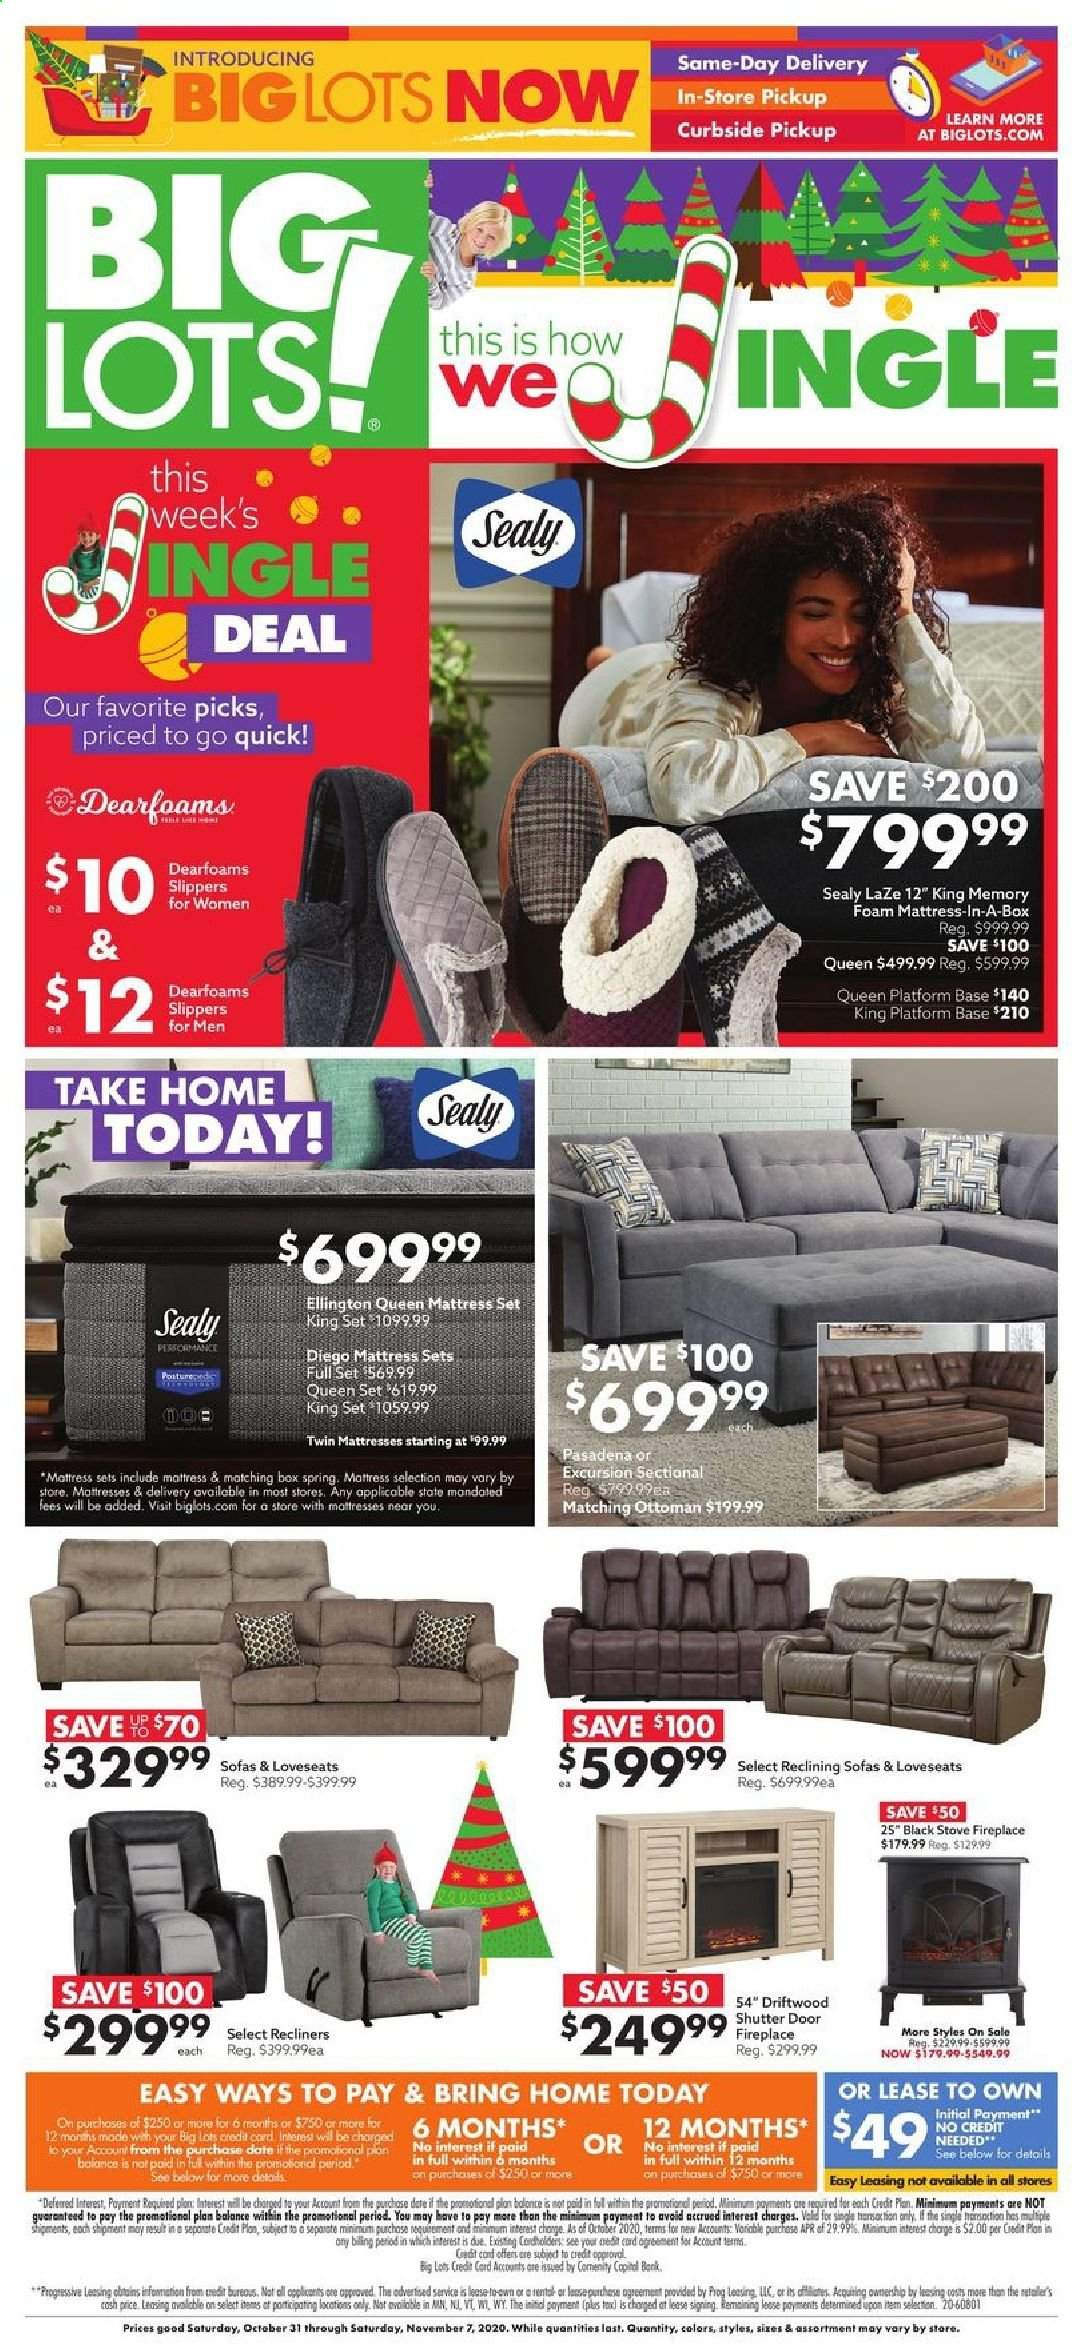 Big Lots Flyer - 10.31.2020 - 11.07.2020 - Sales products - box, door, fireplace, mattress, sectional, slippers, ottoman, stove, foam mattress, doors, spring. Page 1.